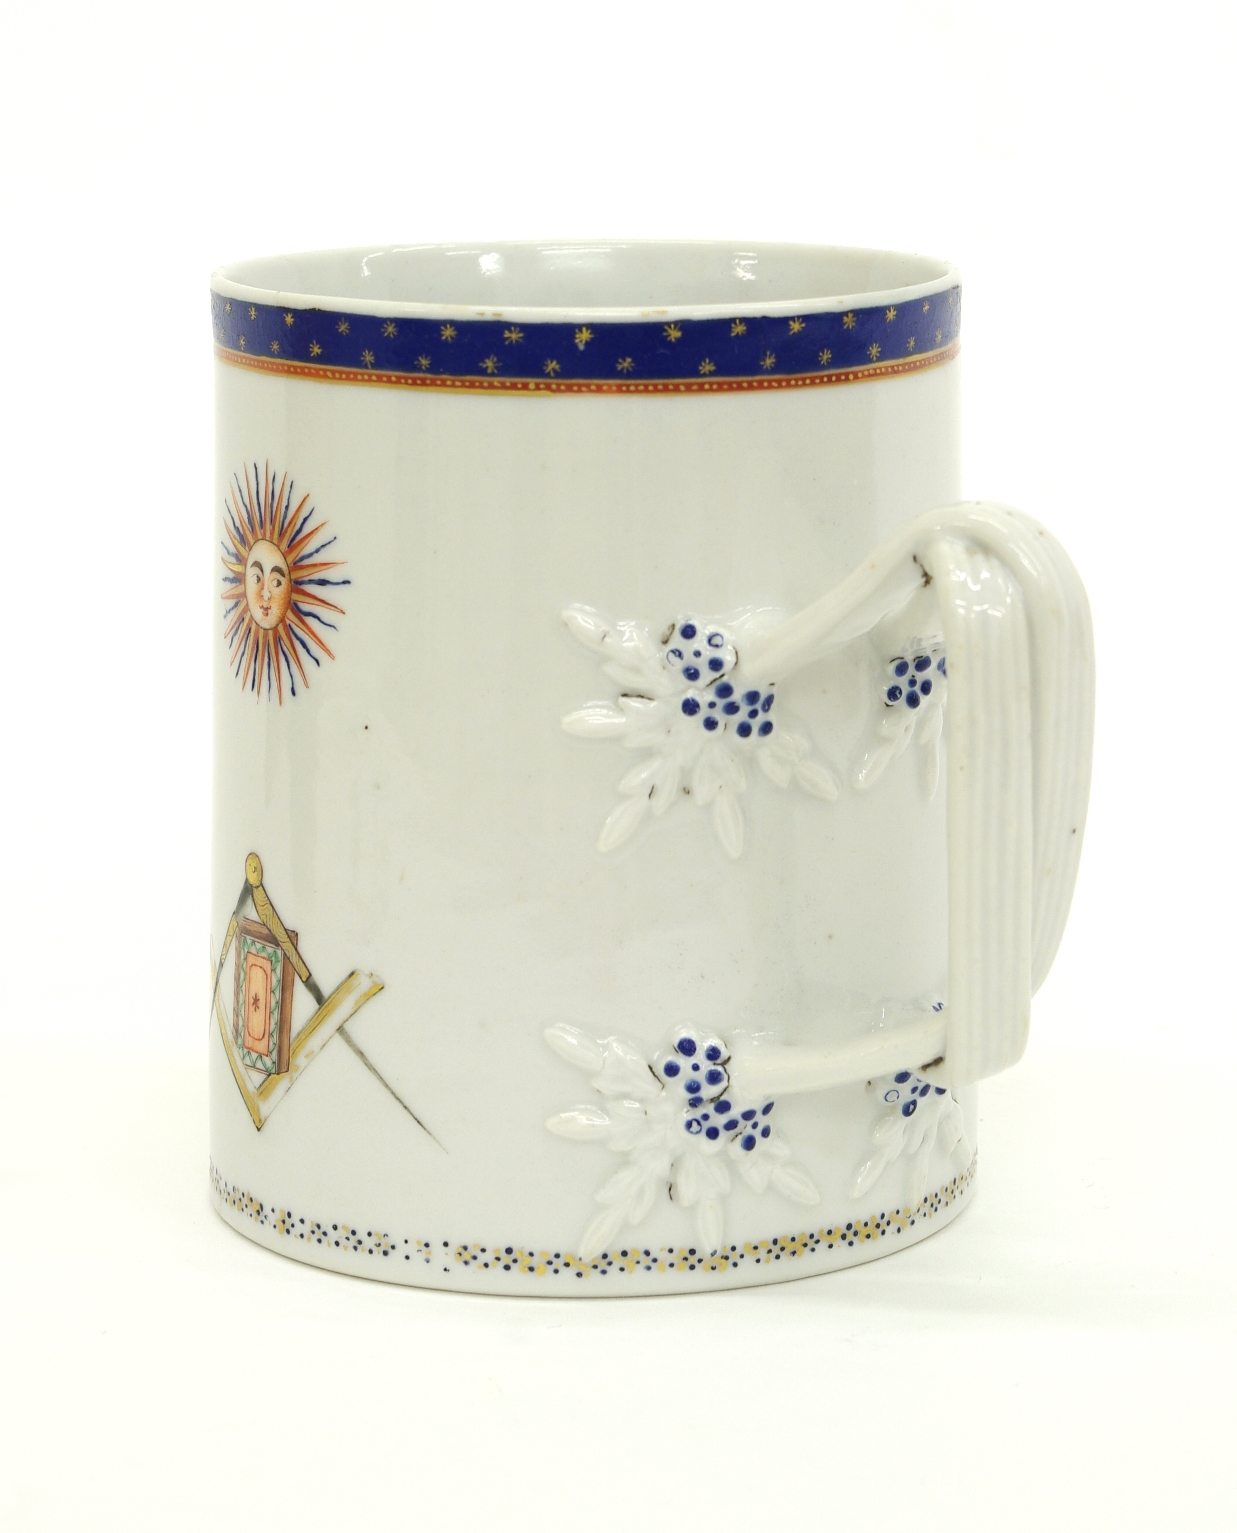 View 5: Chinese Export Porcelain Masonic Mug, c. 1795